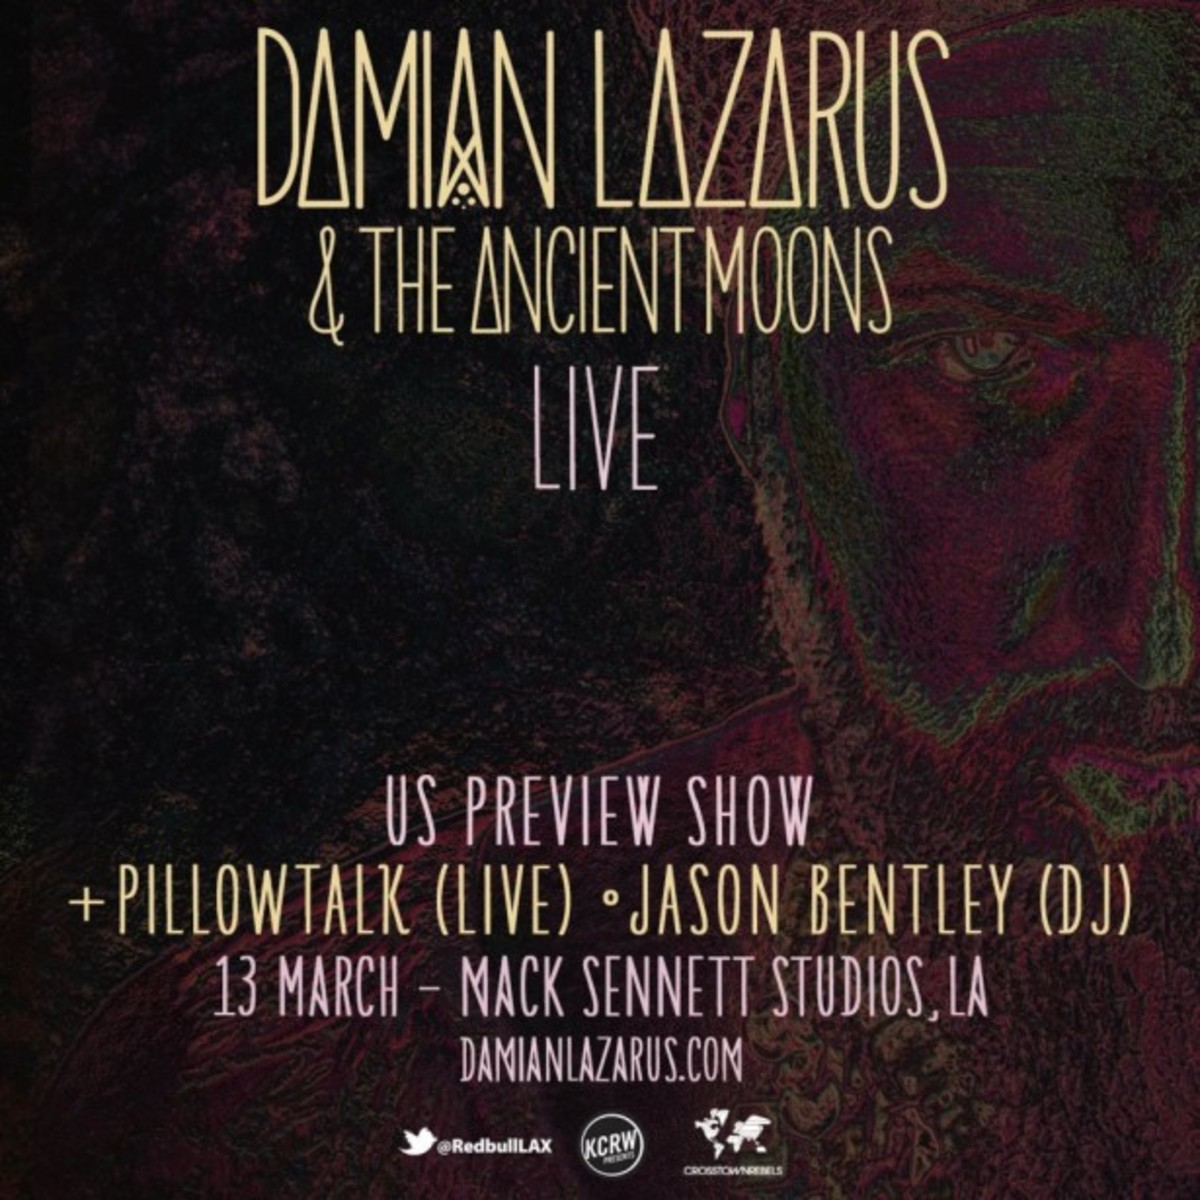 Damian Lazarus Performs the Ancient Moons Live at Mack Sennet Studios LA